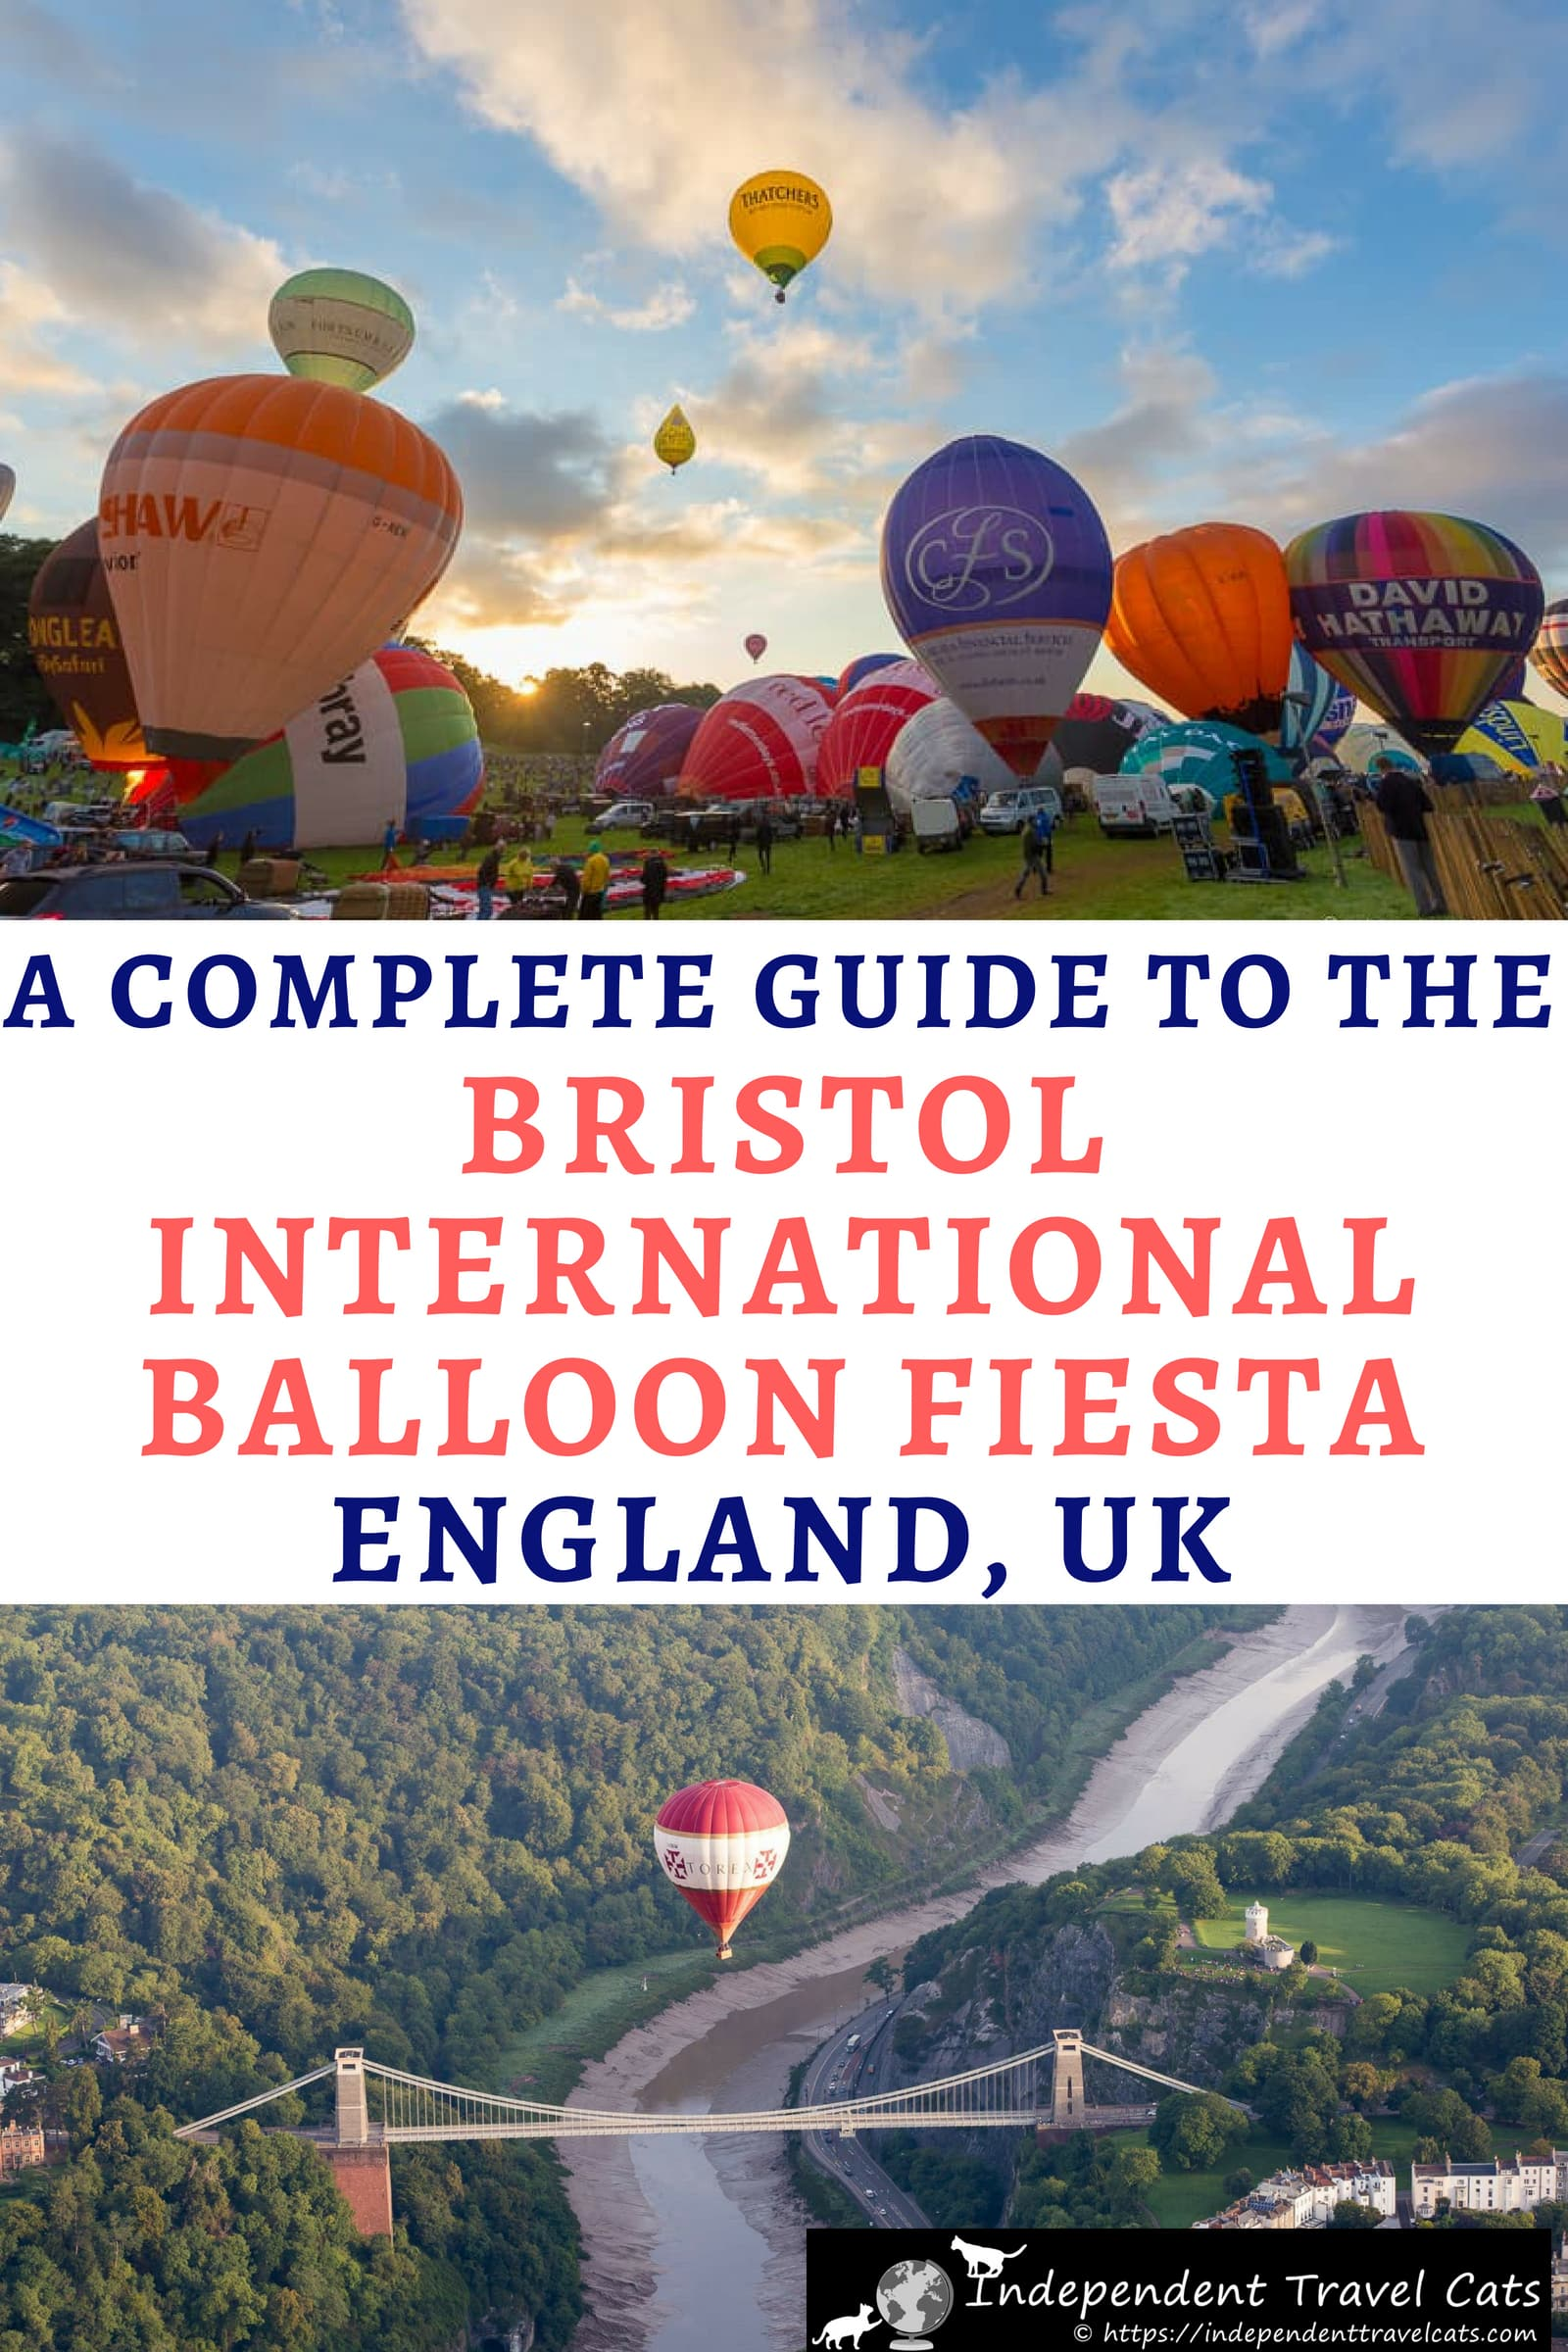 A guide to attending the Bristol International Balloon Fiesta, the largest annual hot air balloon event in Europe. The Bristol Balloon Fiesta events include the mass ascension of over 100 hot air balloons, nightglows, balloon competitions, fireworks, and family attractions. We share all the information you need to plan your trip, book your stay, park, and enjoy the festival. #BristolBalloonFiesta #hotairballoon #balloonfiesta #ballooning #Bristol #England #travel #festival #UKfestival